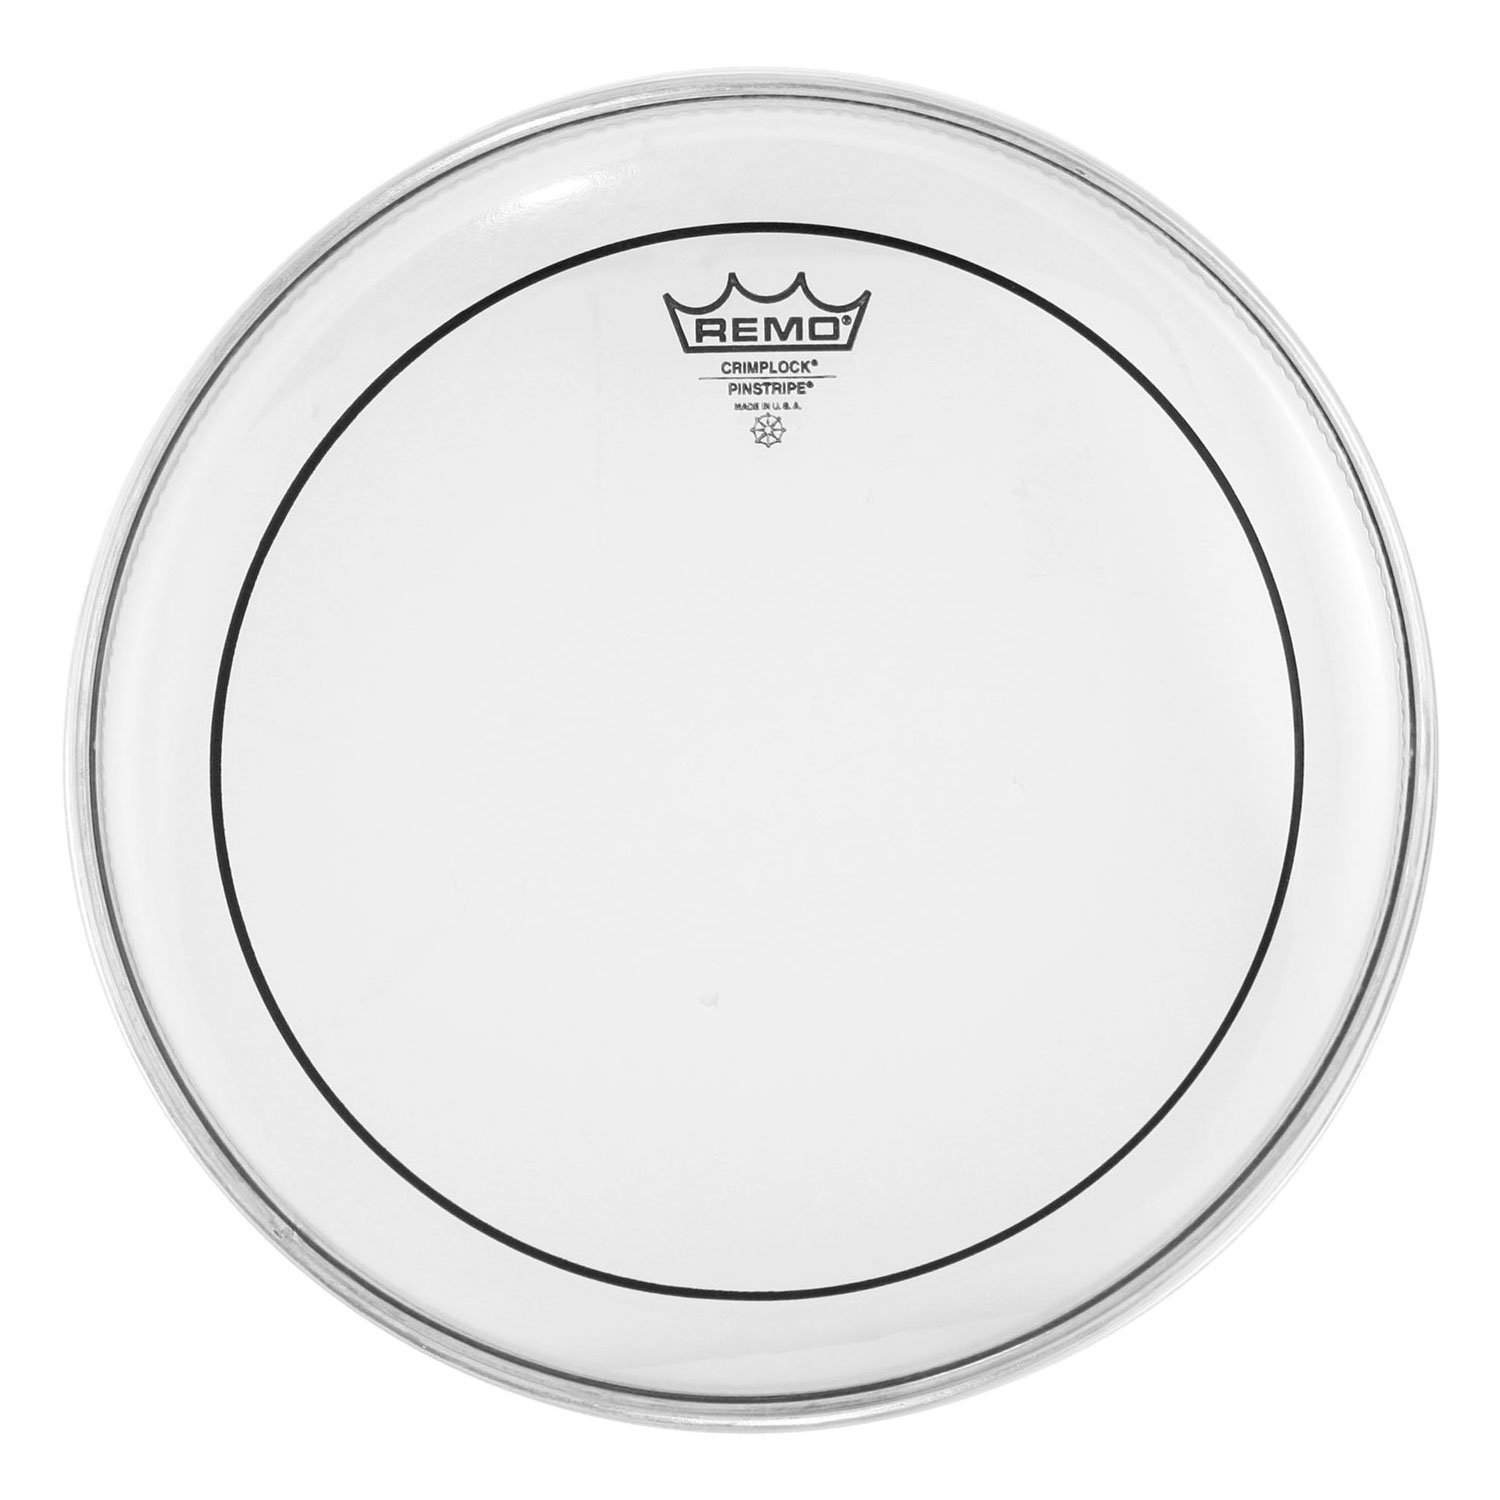 "Remo 14"" Pinstripe Clear Crimplock Marching Tenor Drum Head"